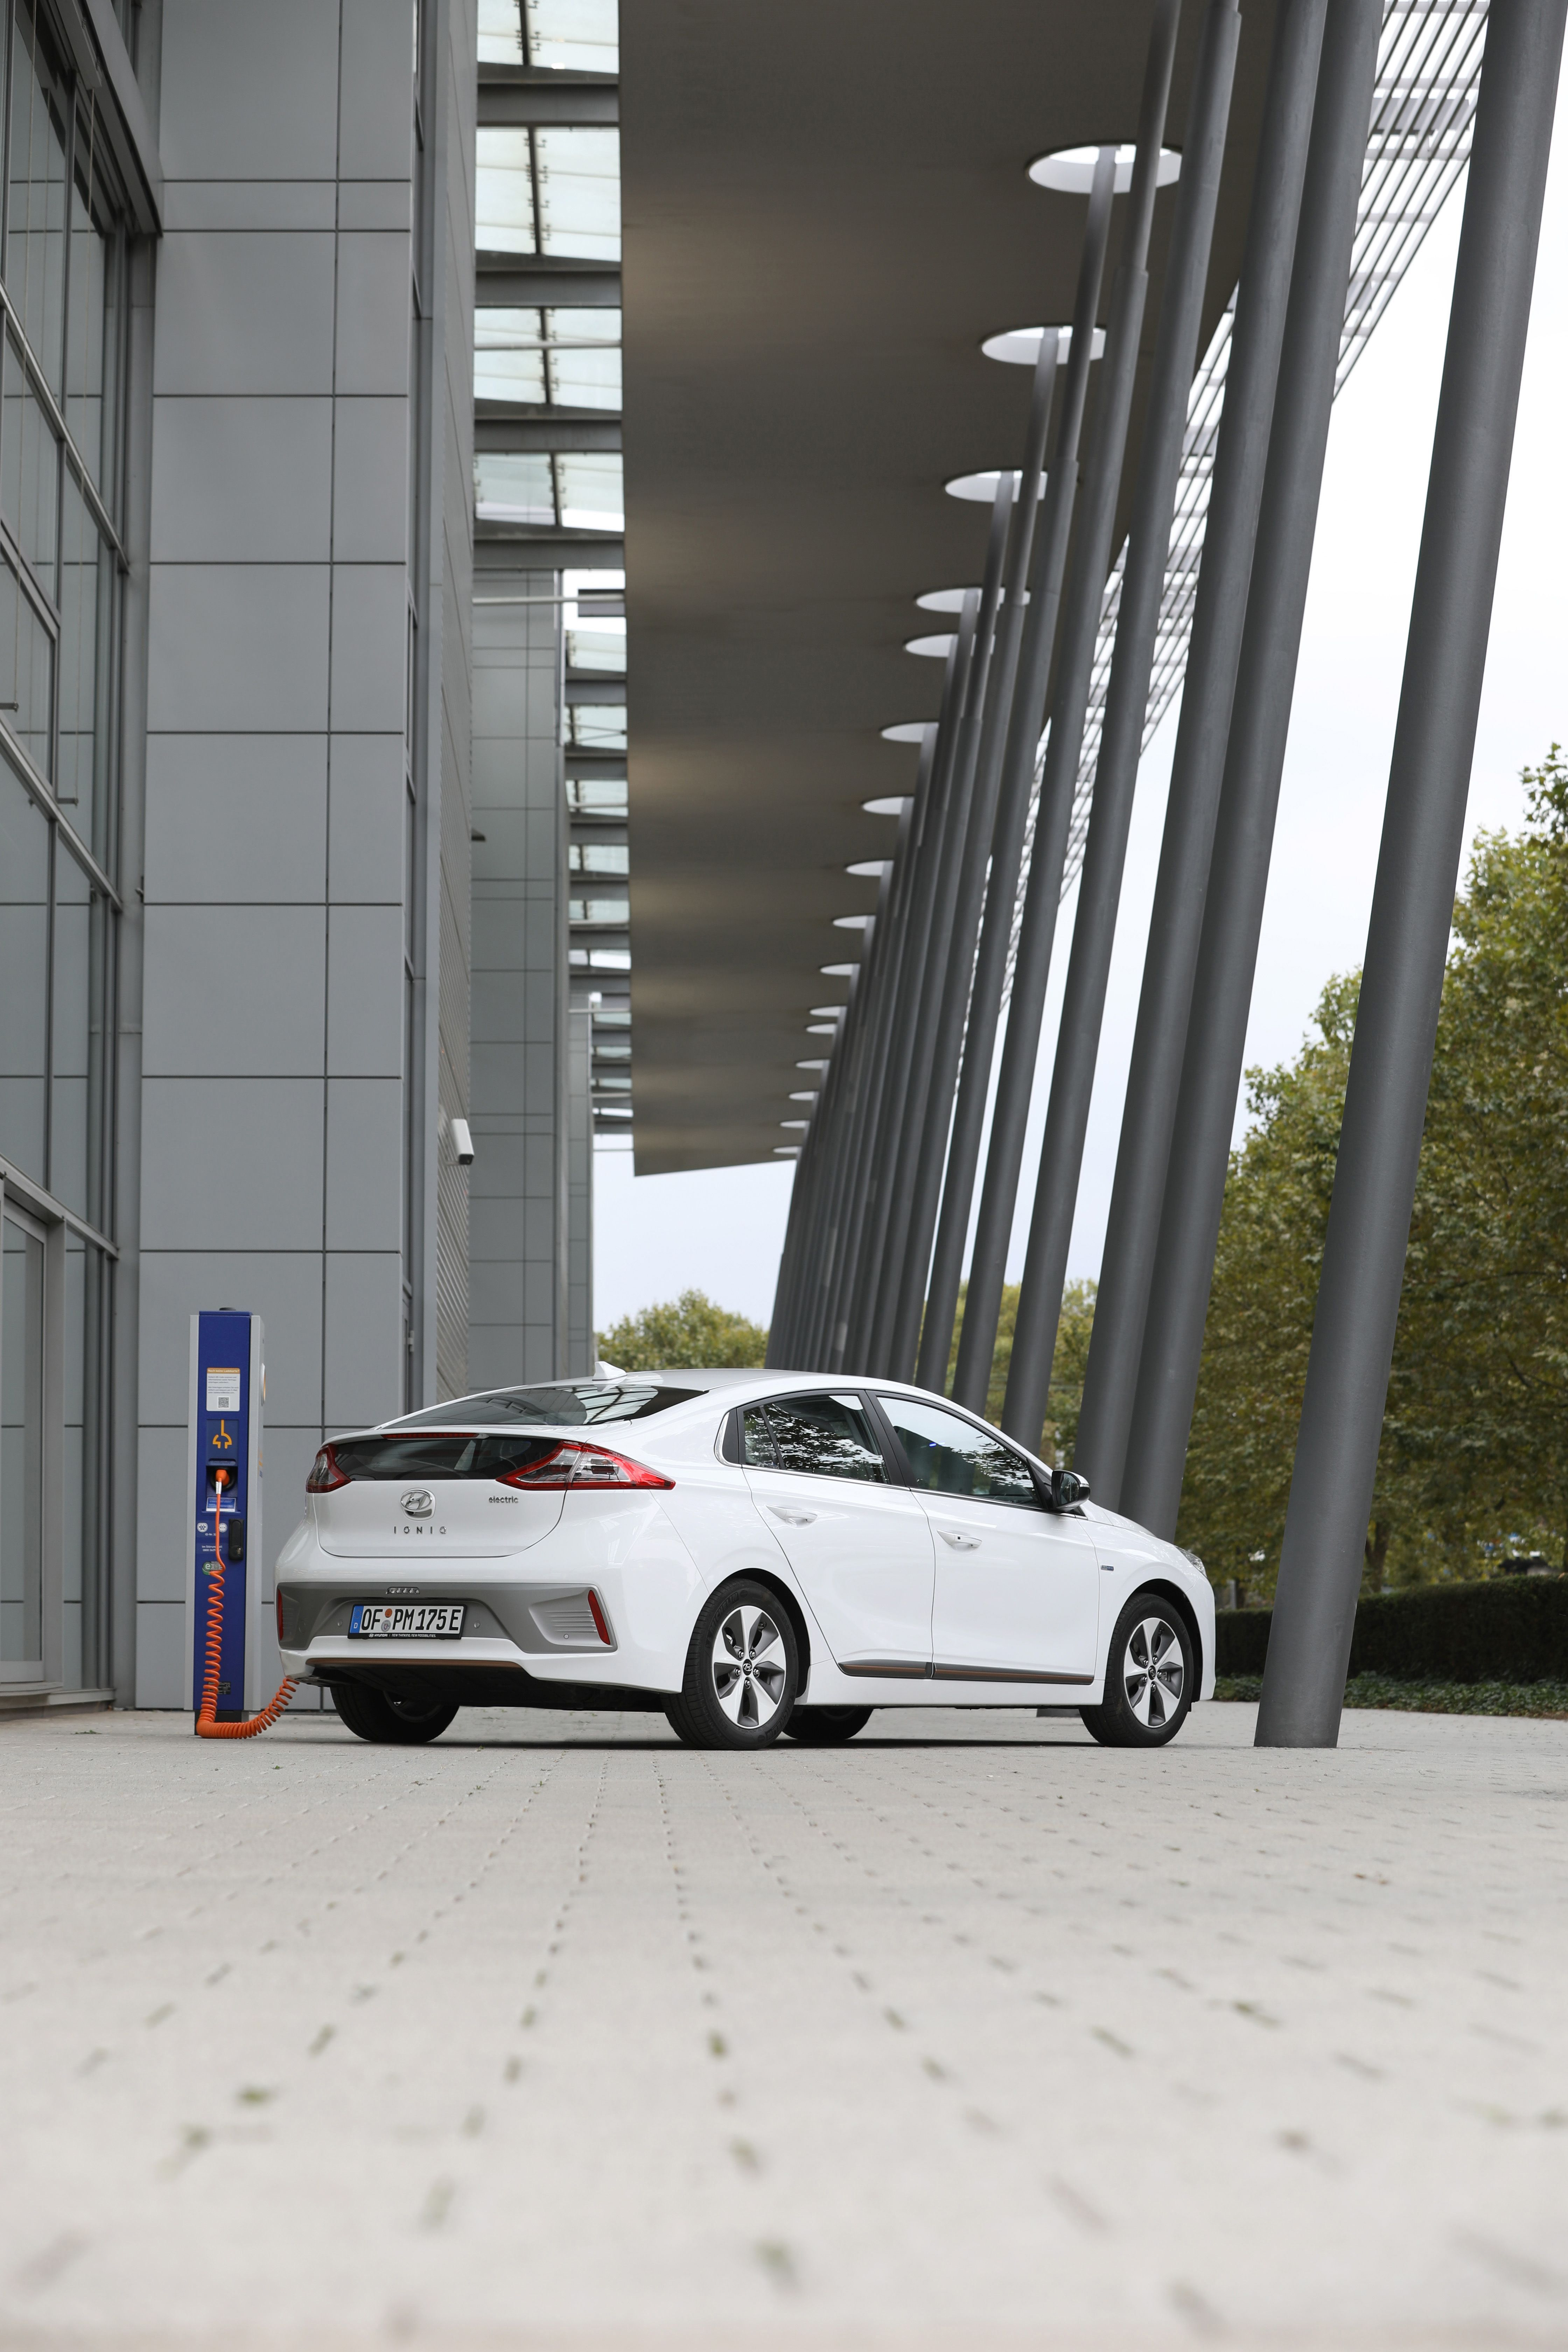 Picture 1: An IONIQ charging in front of the EnBW headquarters in Karlsruhe